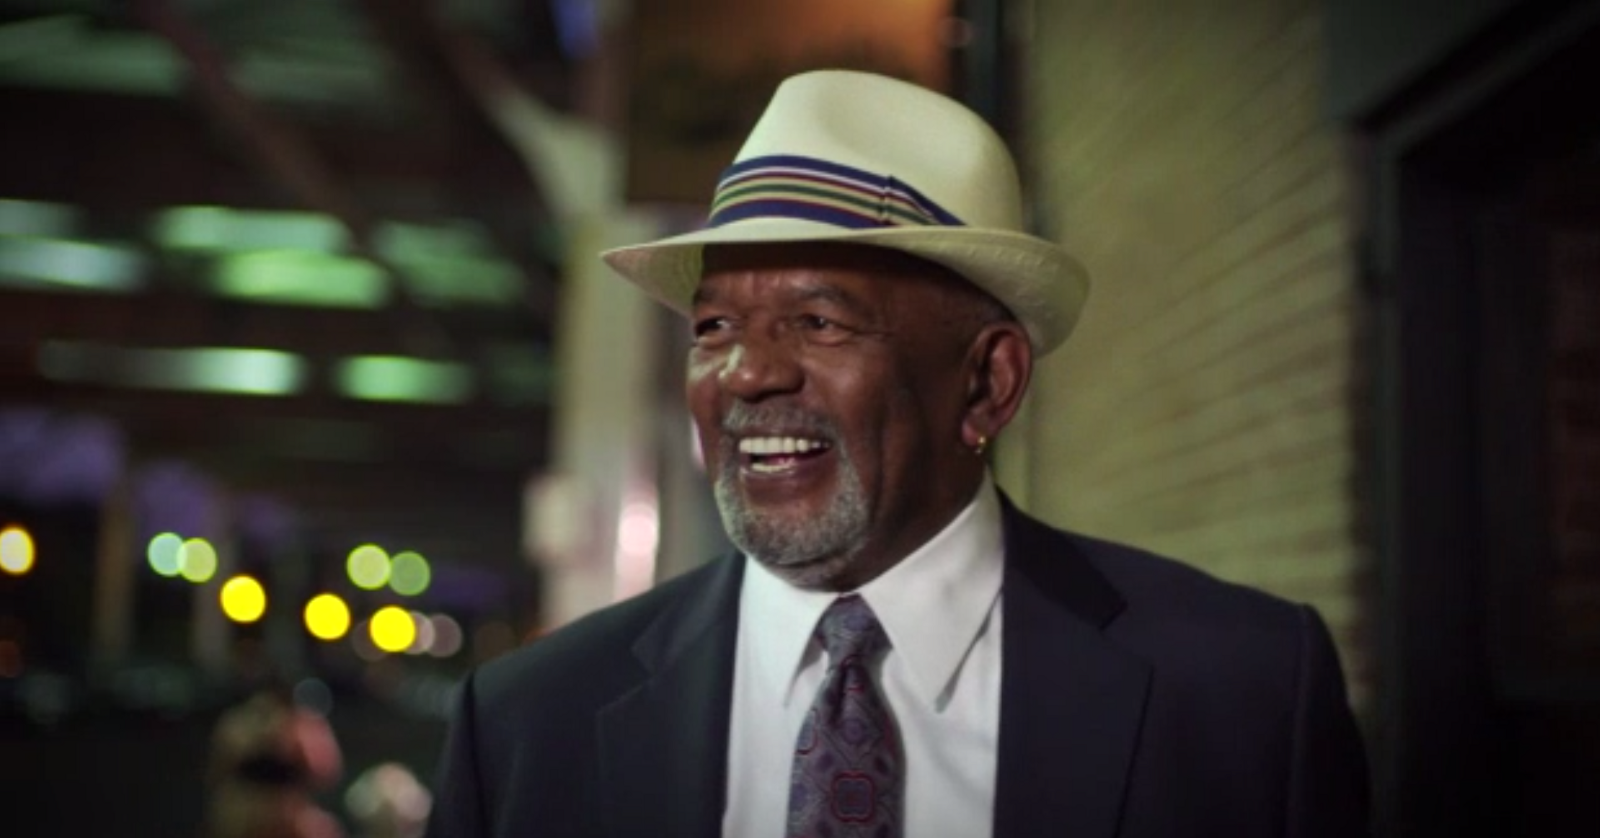 NBC4 in Washington will honor Jim Vance tonight and you should watch